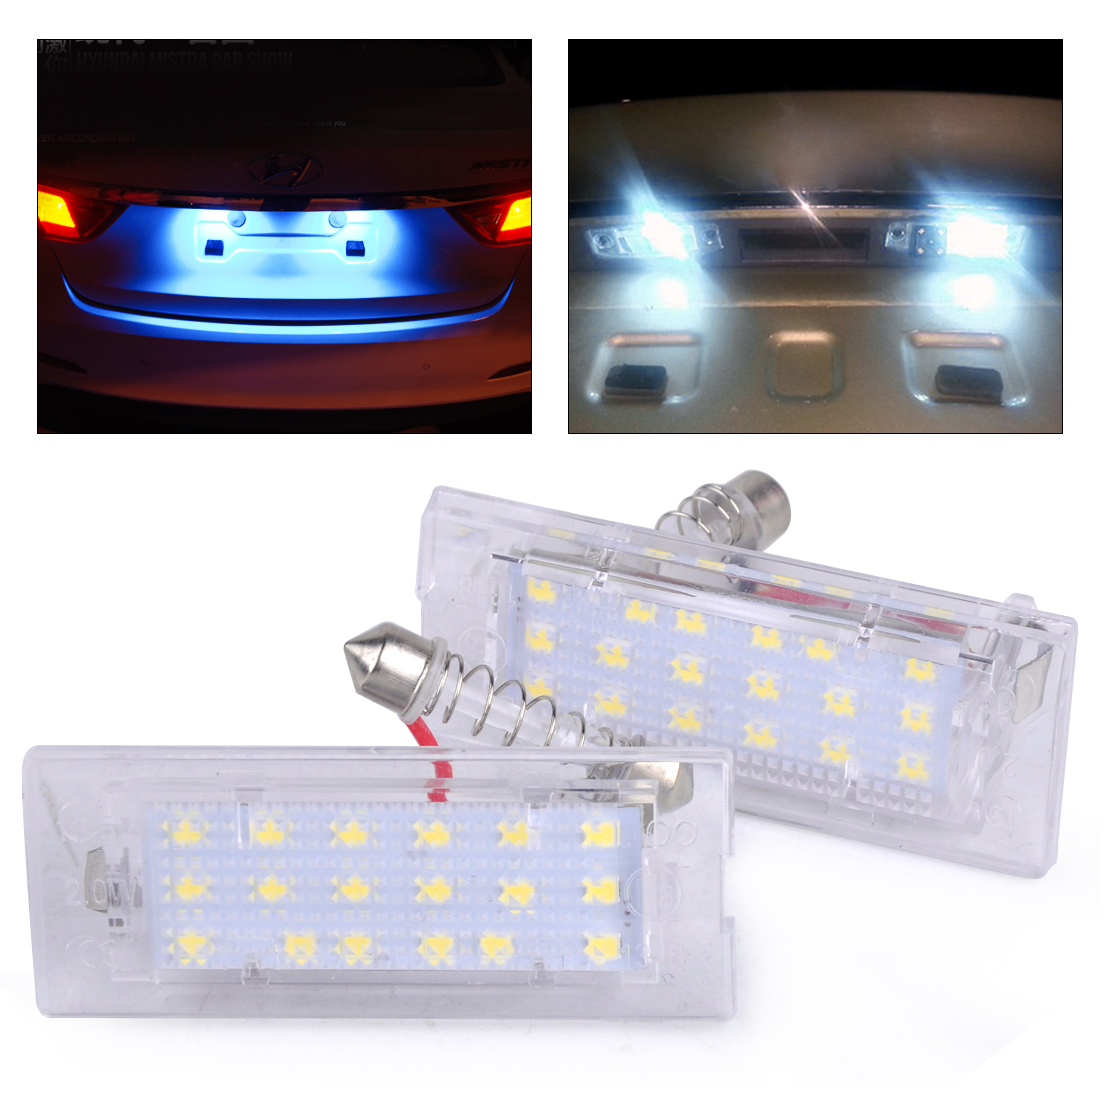 0beler New Pair Error Free LED License Plate Light Lamps for BMW X5 E53 X3 E83 2004 2005 2006 2007 2008 2009 2010 2011 2012-2015 smaart v 7 new license